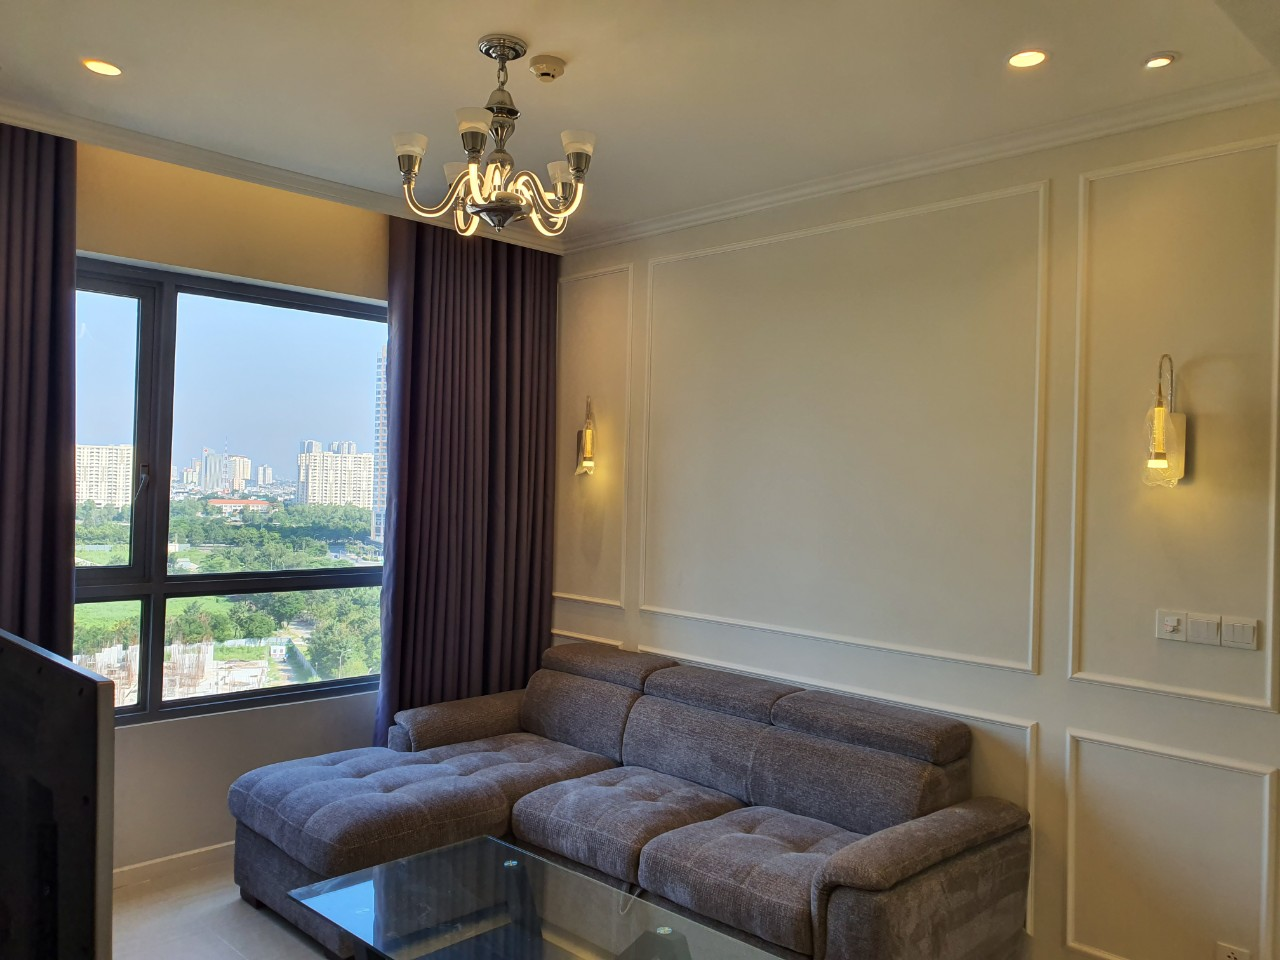 DI0066 - Diamond Island Apartment For Rent & Sale in Ho Chi Minh City - 3 bedroom